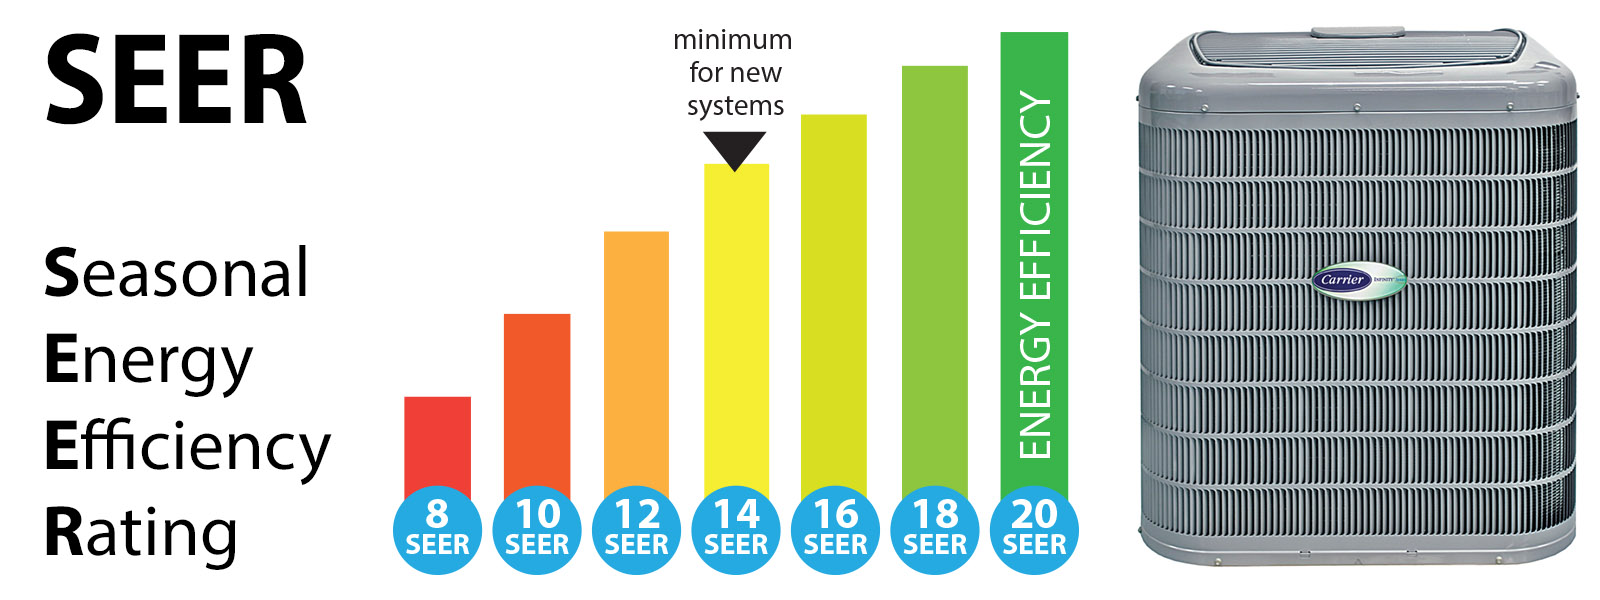 seer_rating_graphic